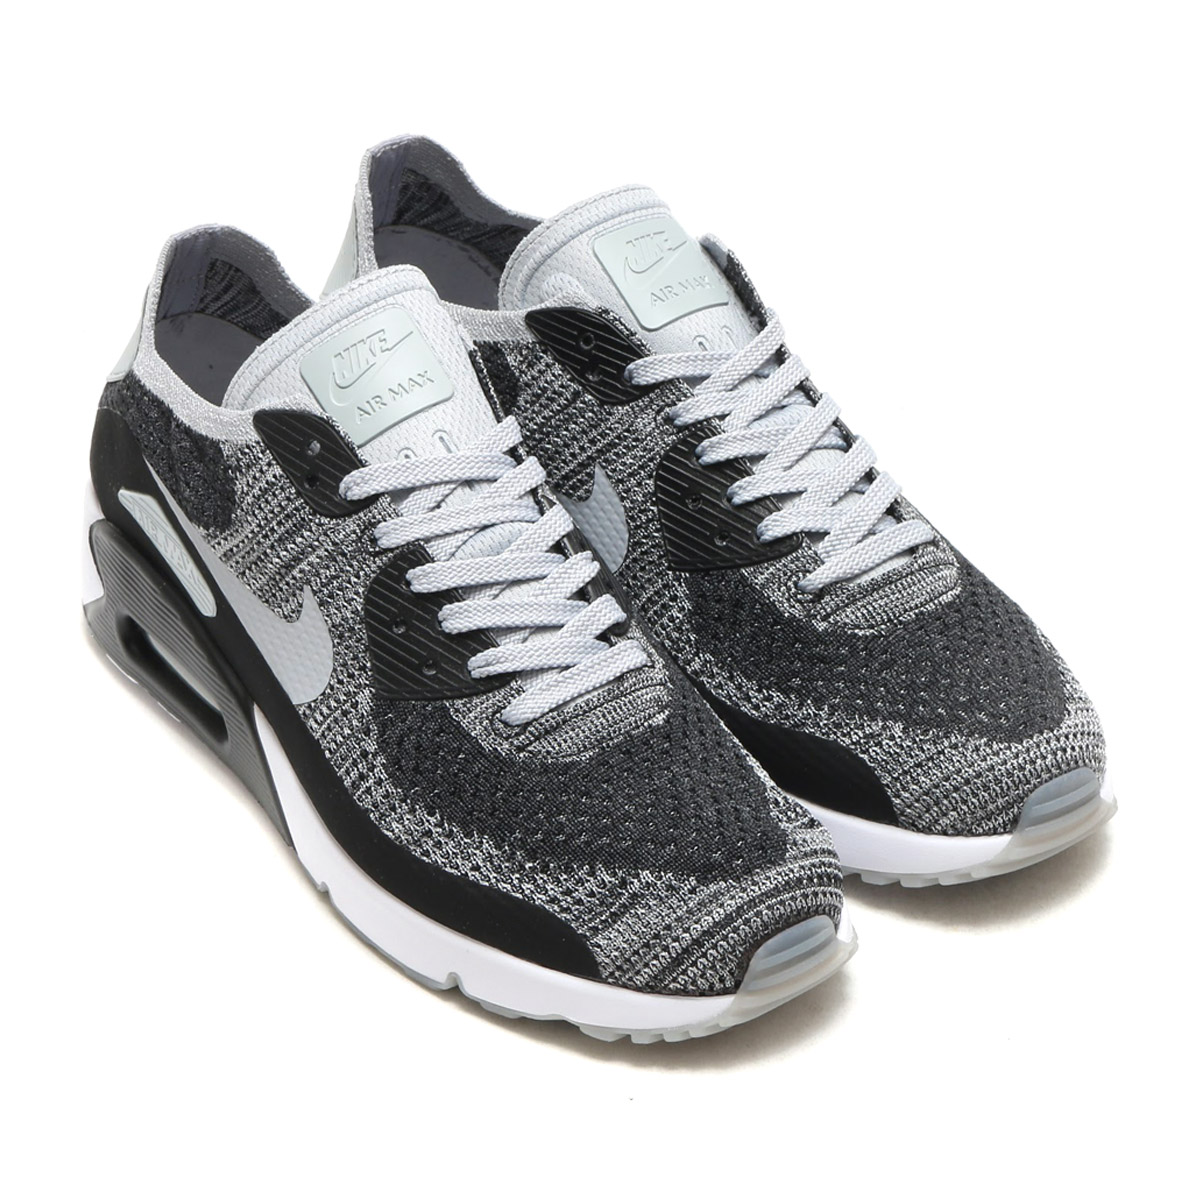 56c9a41254 It renovates a design and expresses the hommage to Air Max icon. Is  distinguished for the form mid sole which adopt lightness and Flyknit upper  superior in ...